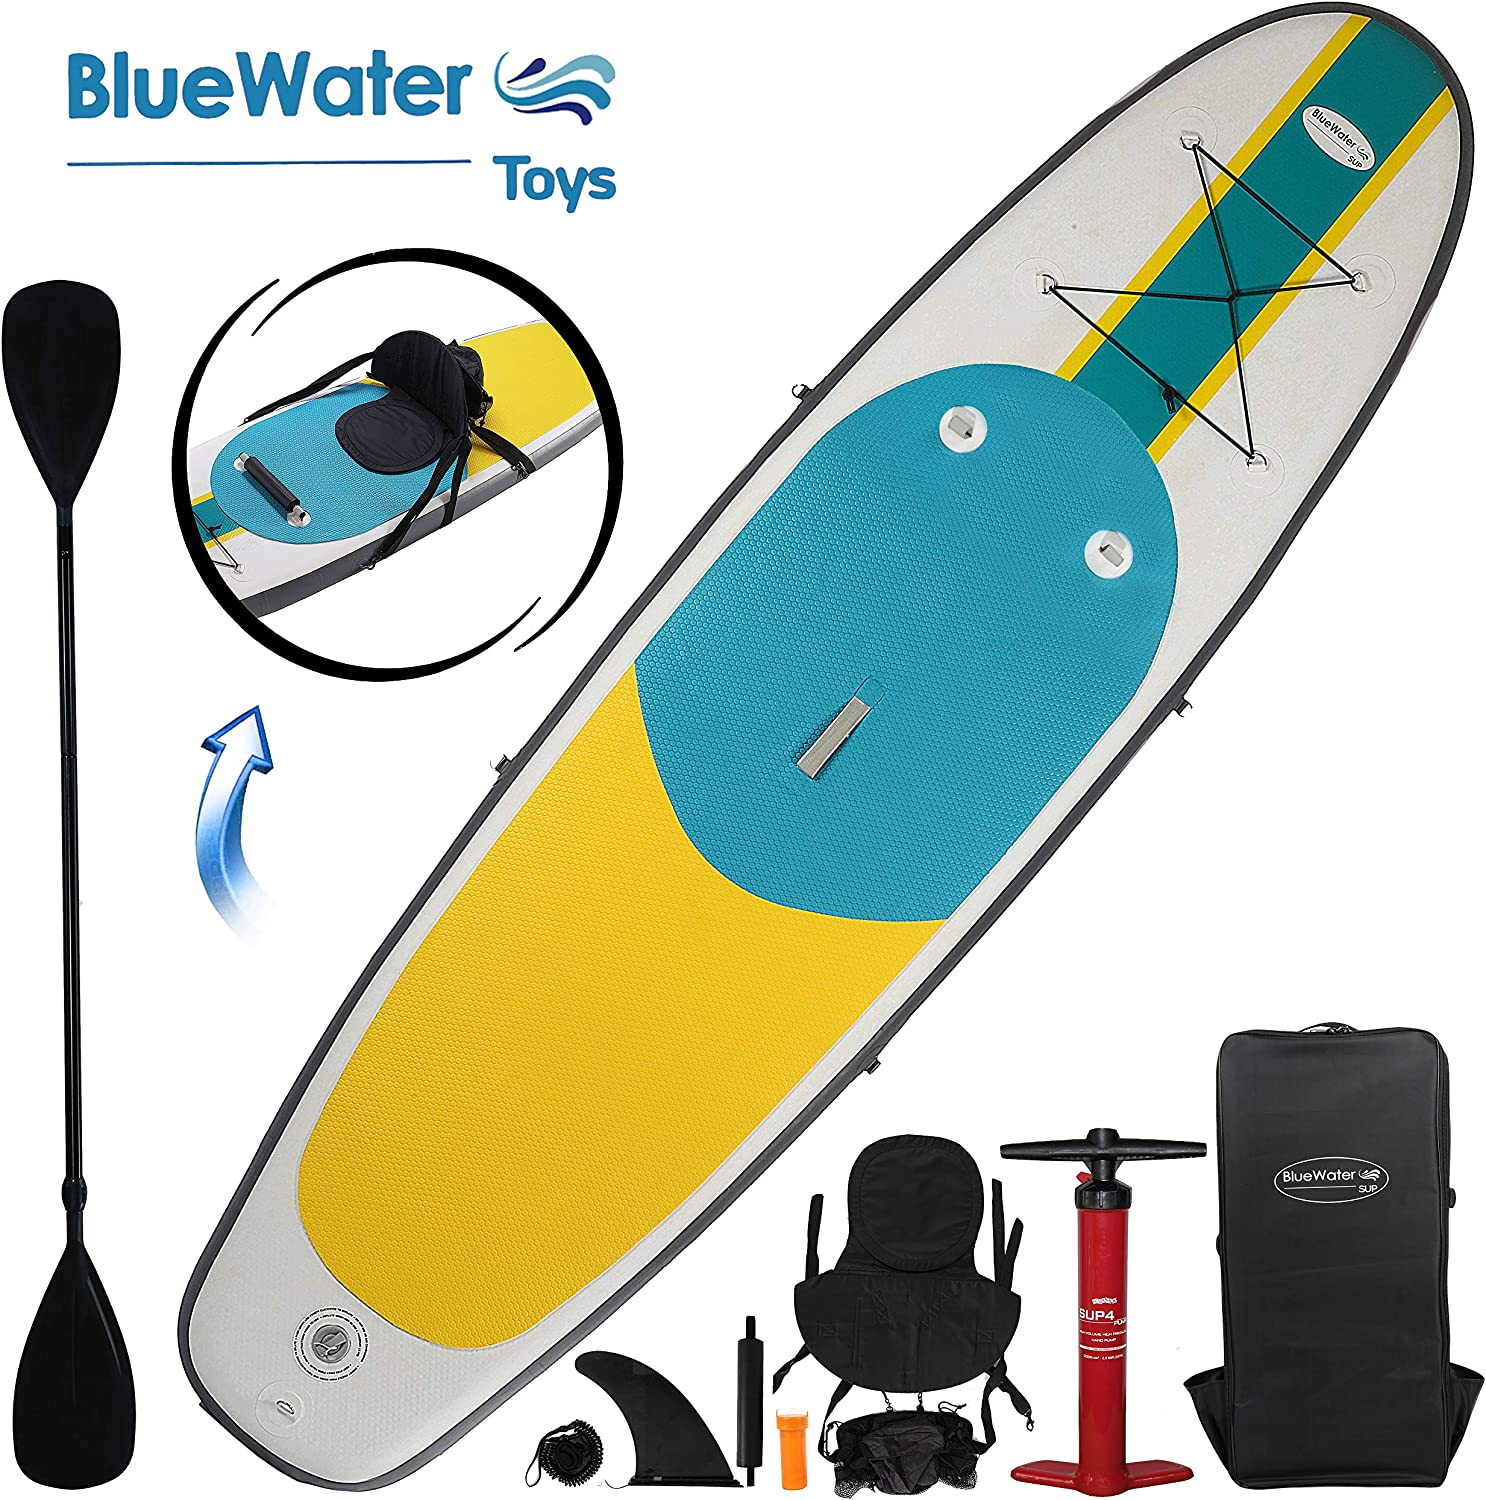 10 Inflatable Stand Up Paddle Board Kayak And SUP 6 Inches Thick, 32 Inch Wide Stance Width 11-Piece Accessory Set That Includes Convertible Paddle, Kayak Seat, Travel Backpack, And More